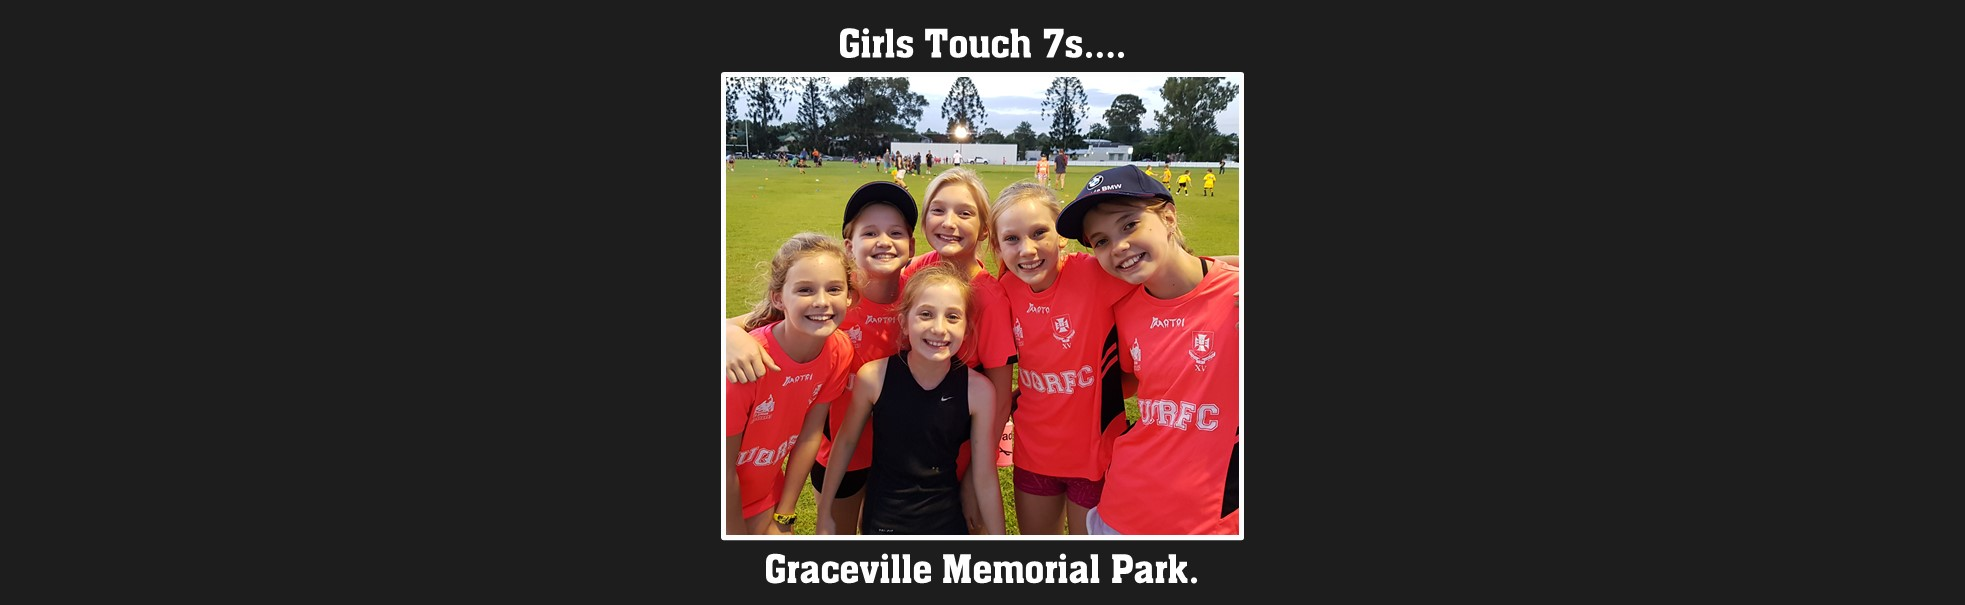 2018 Web Banner Girls Touch 7s